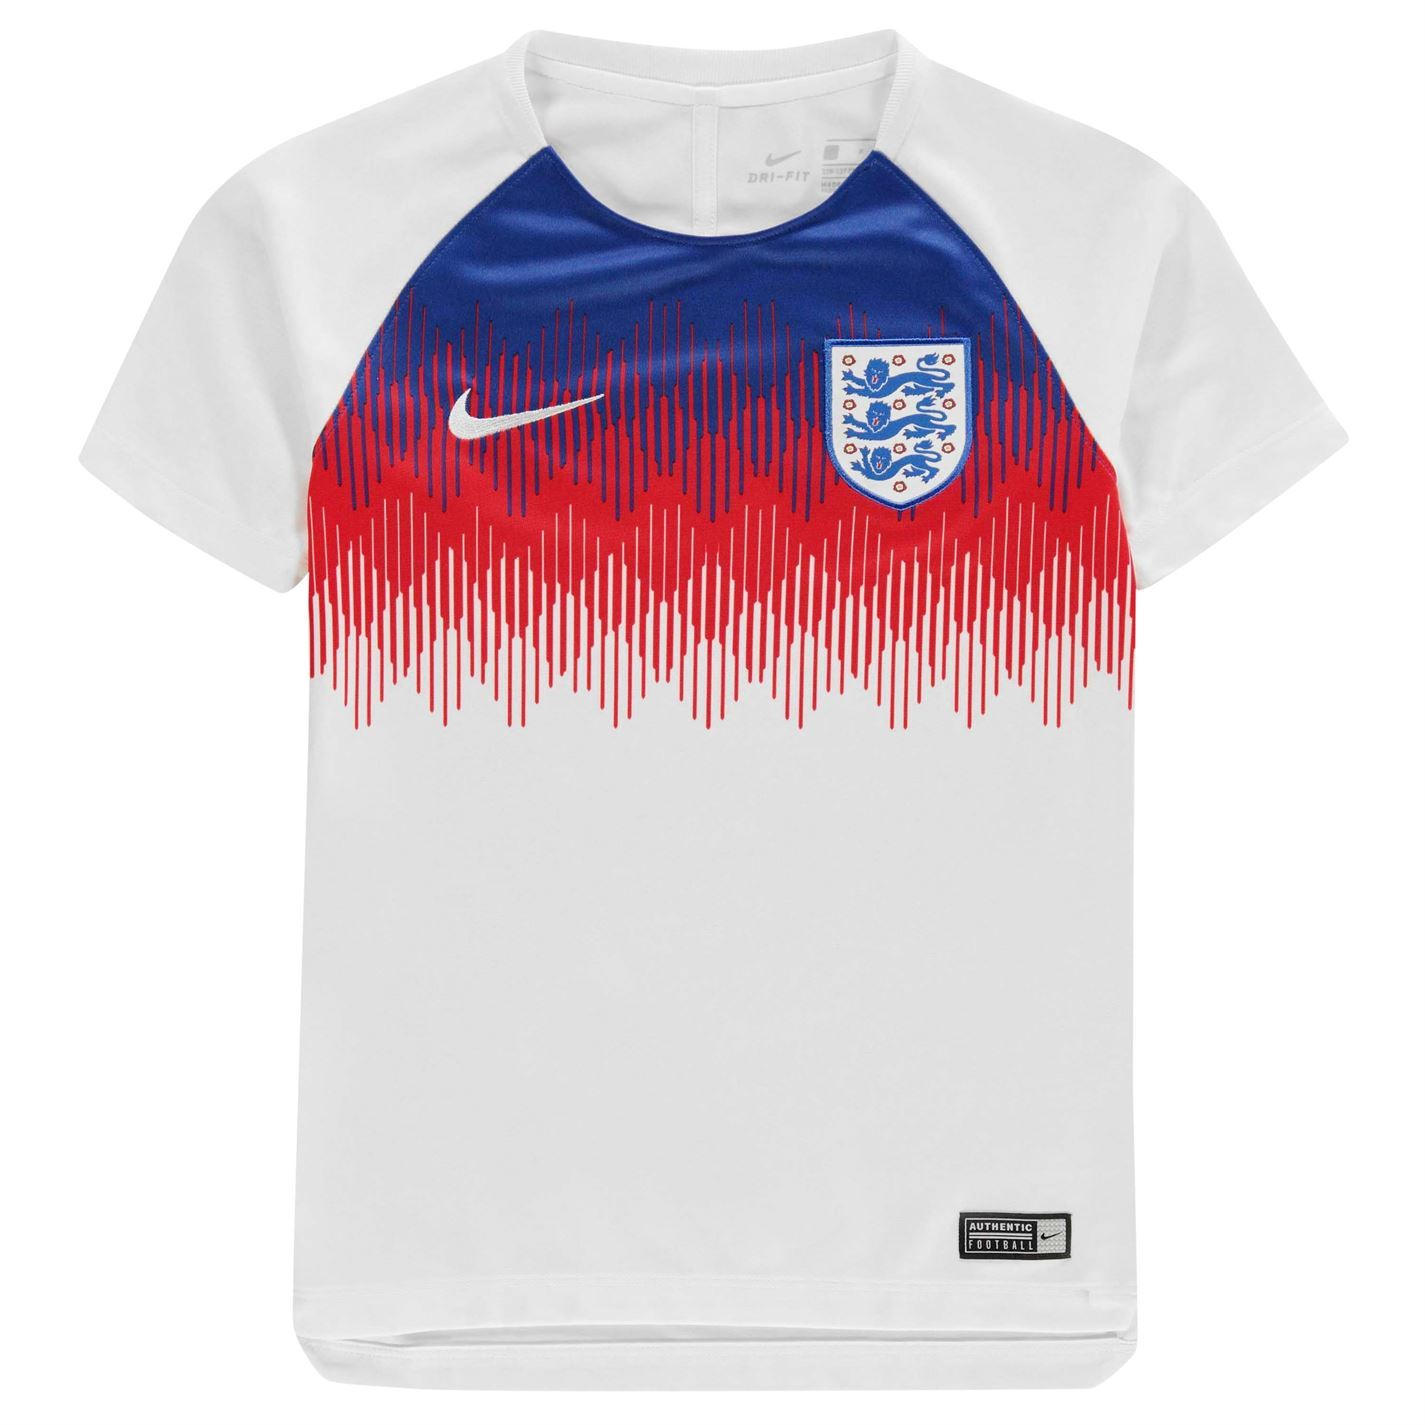 56063b4aa ... Nike England Pre Match Jersey FIFA World Cup 2018 Juniors White  Football Soccer ...